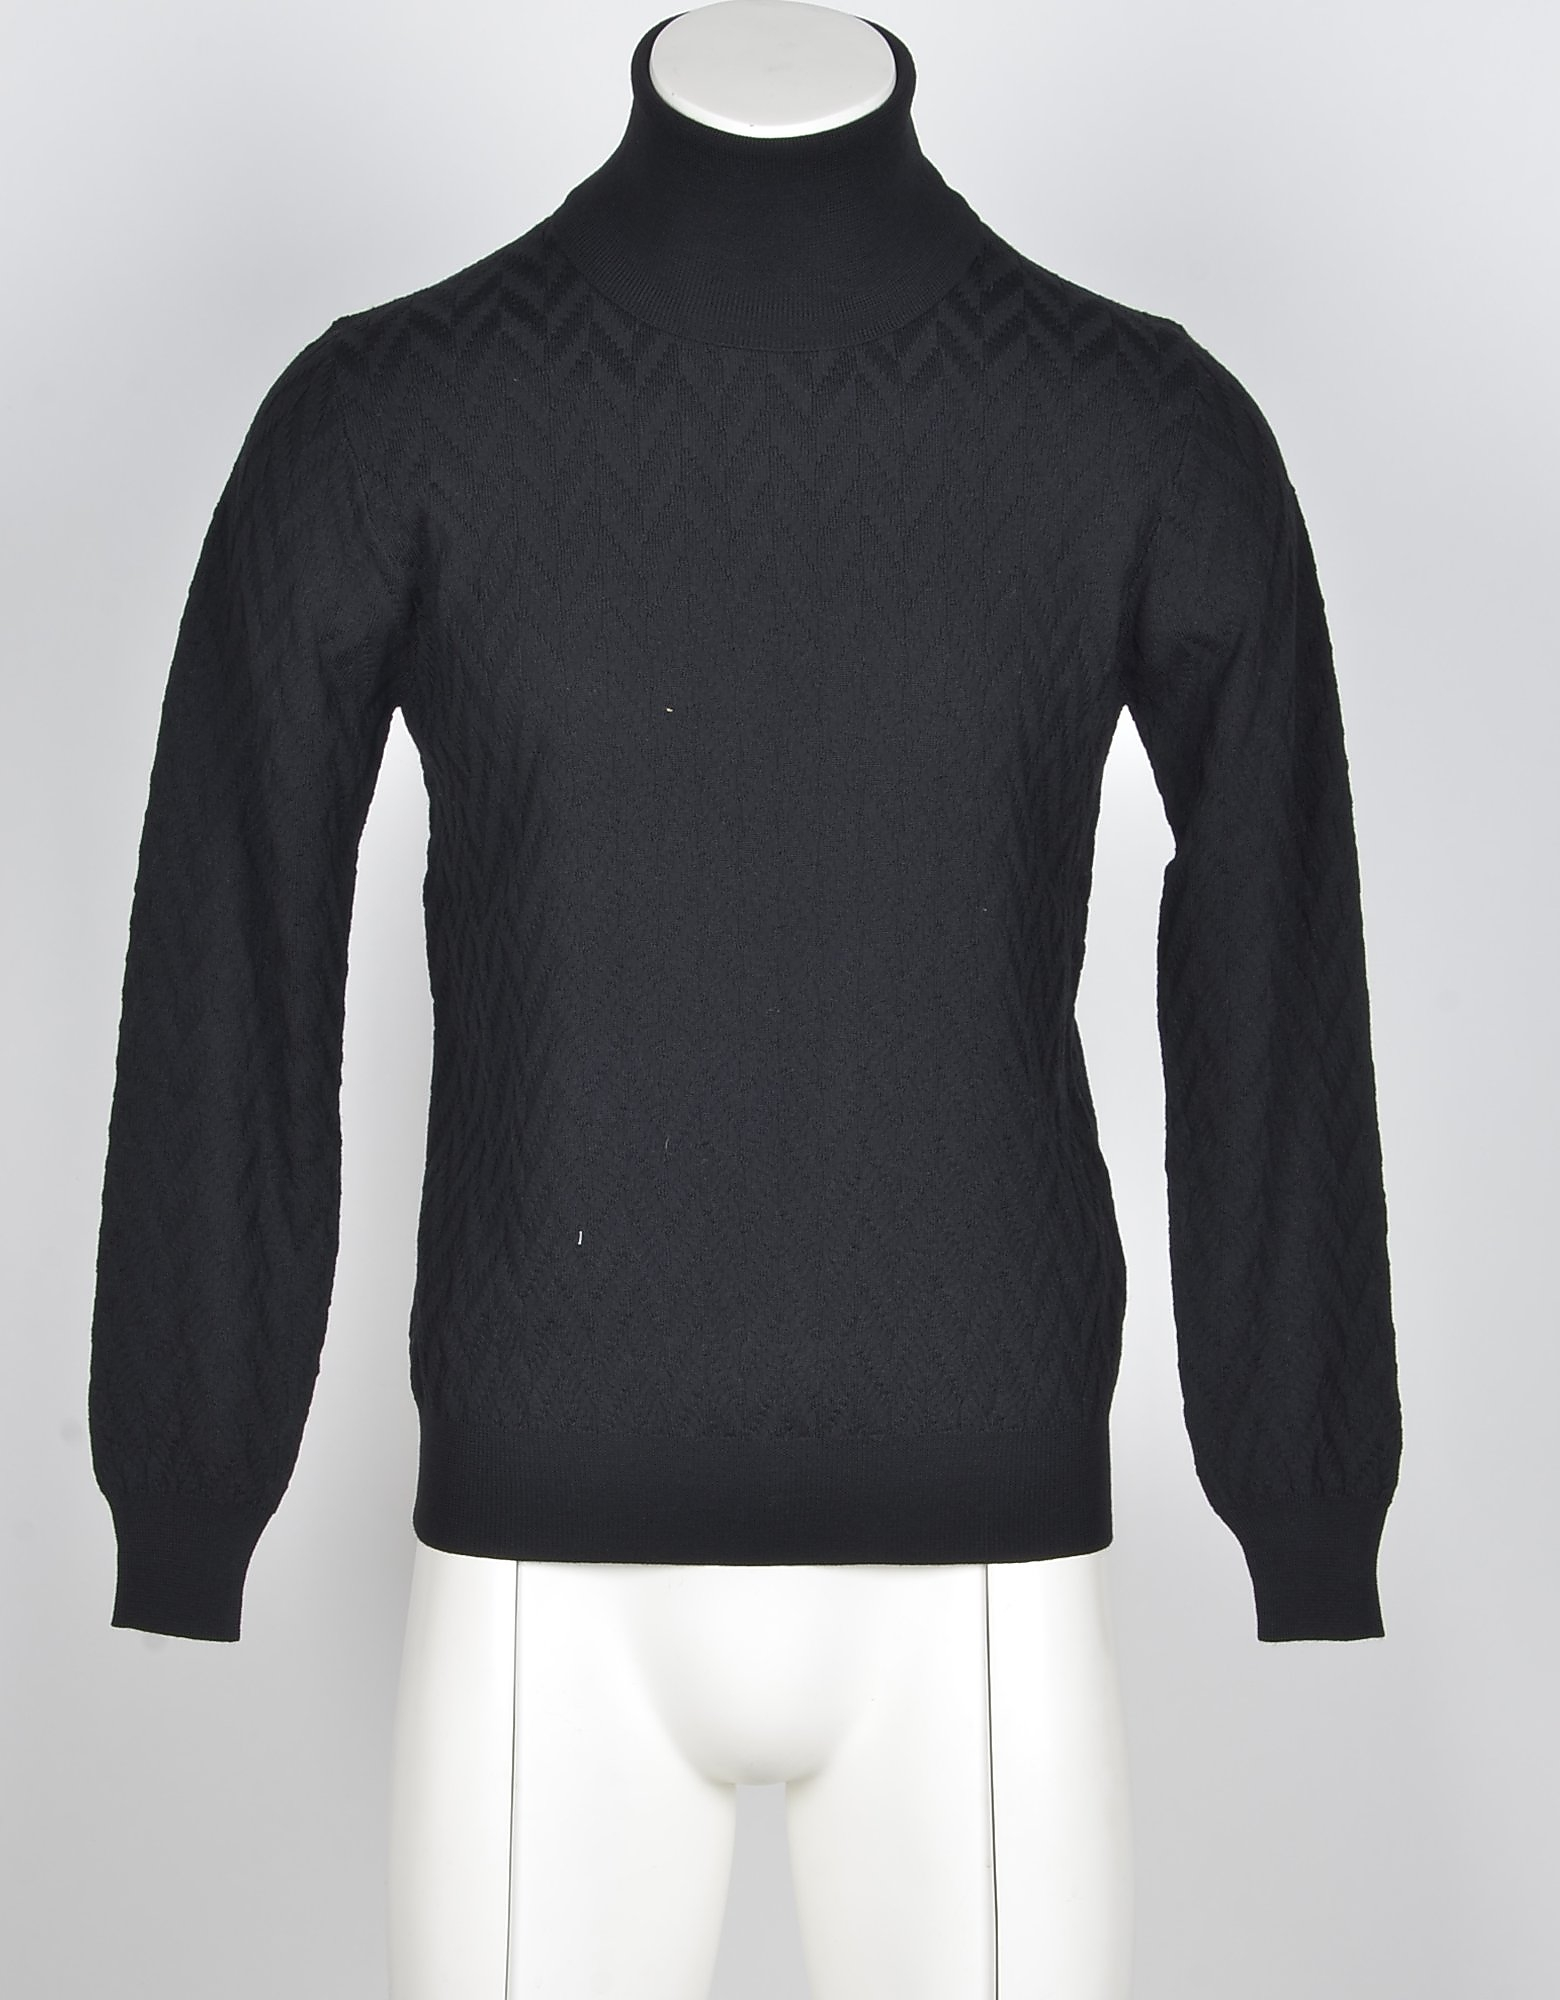 Ballantyne Designer Knitwear, Black Pure Wool Men's Turtleneck Sweater